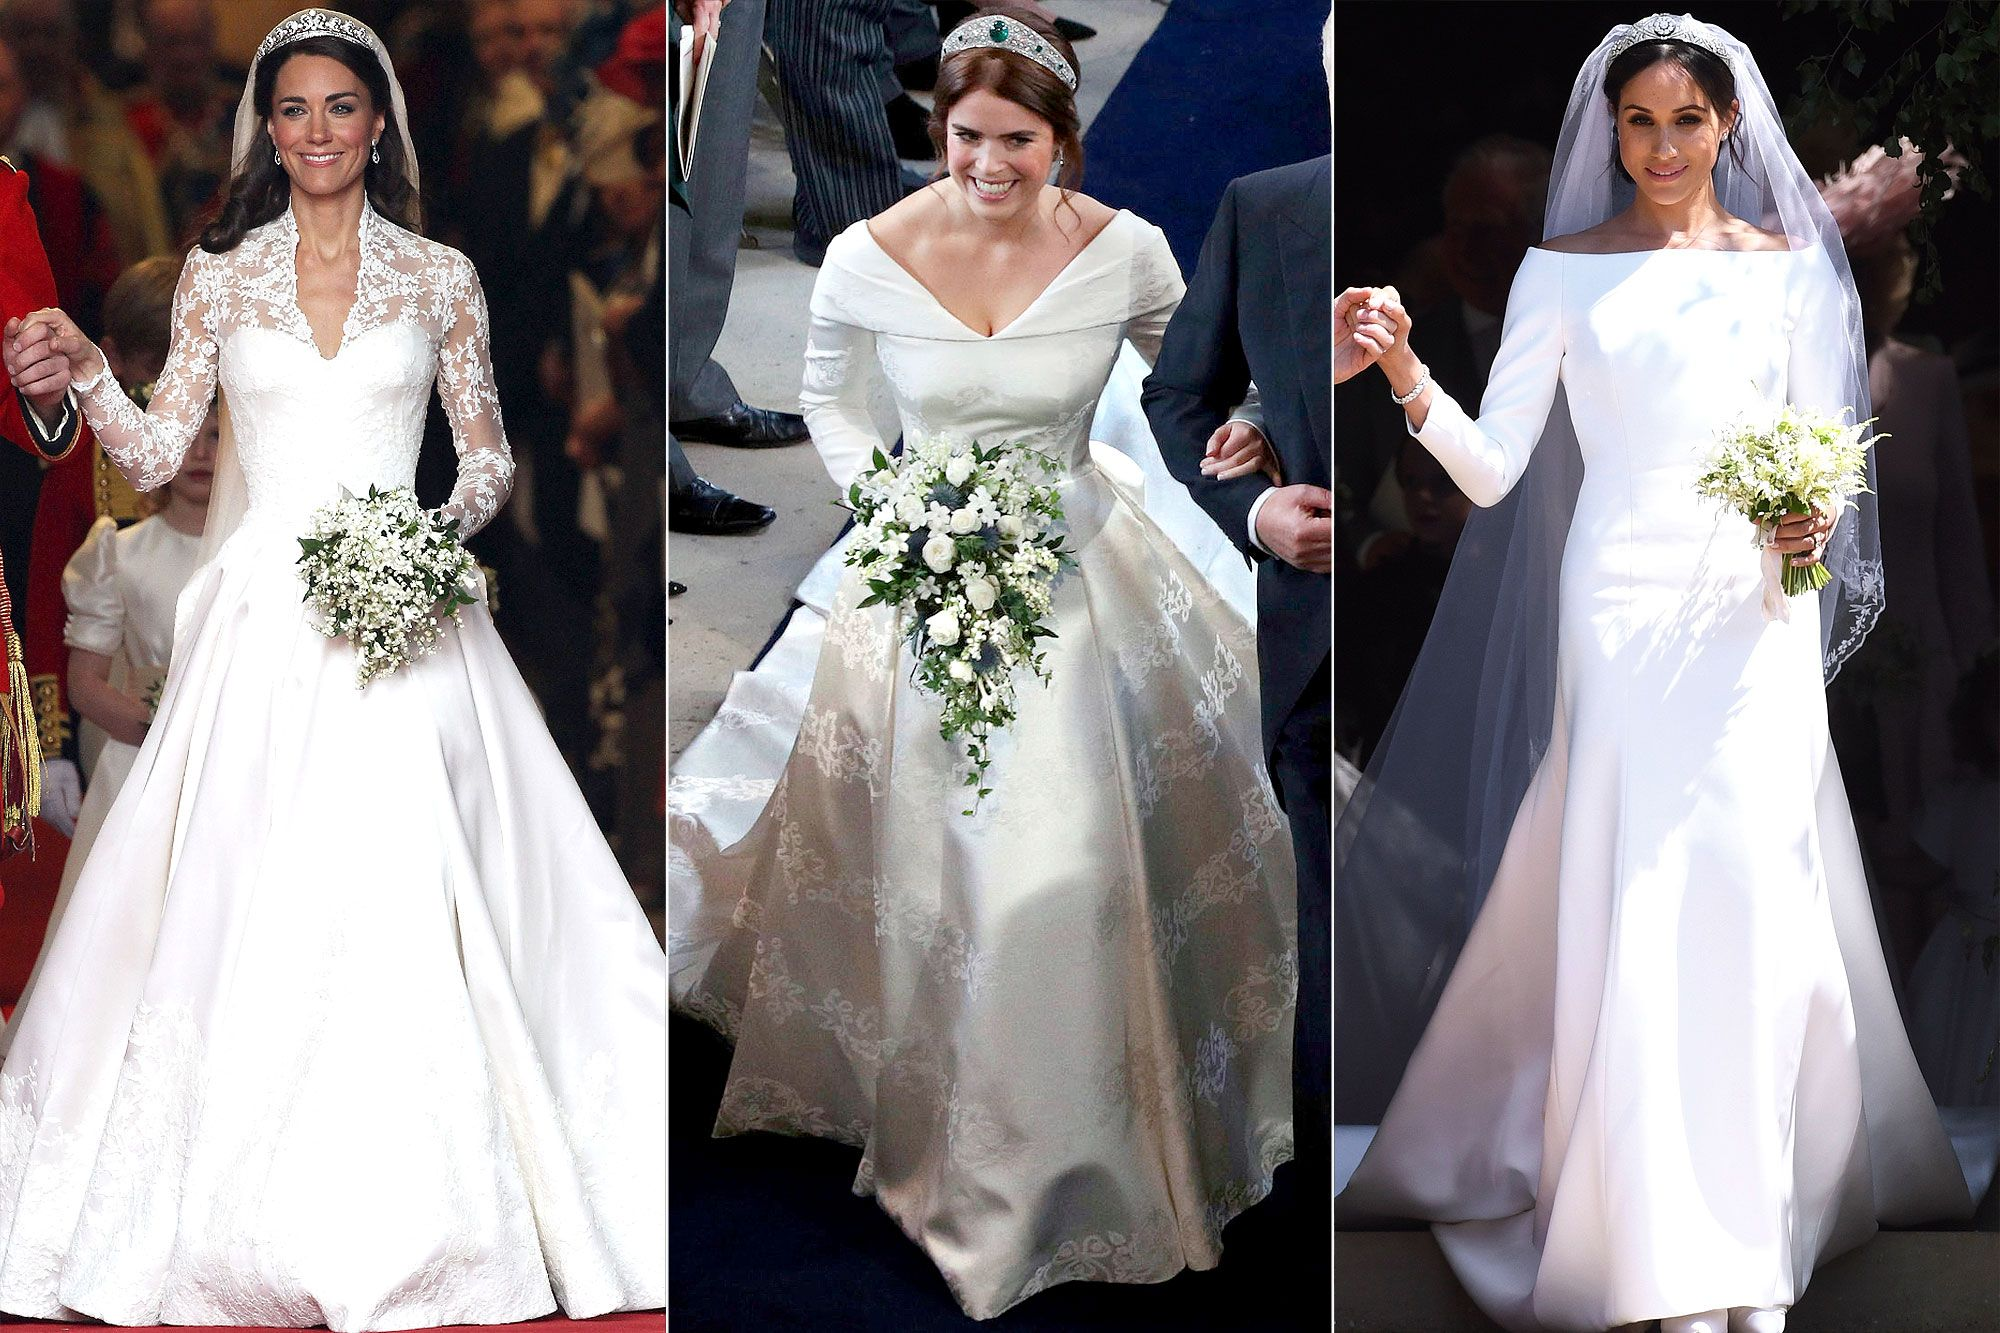 Royal Brides How Princess Eugenie S Wedding Dress Compares To Kate Middleton S And Meghan Markle S Gowns Princess Kate Wedding Dress Wedding Gowns Mermaid Royal Wedding Gowns [ 1333 x 2000 Pixel ]